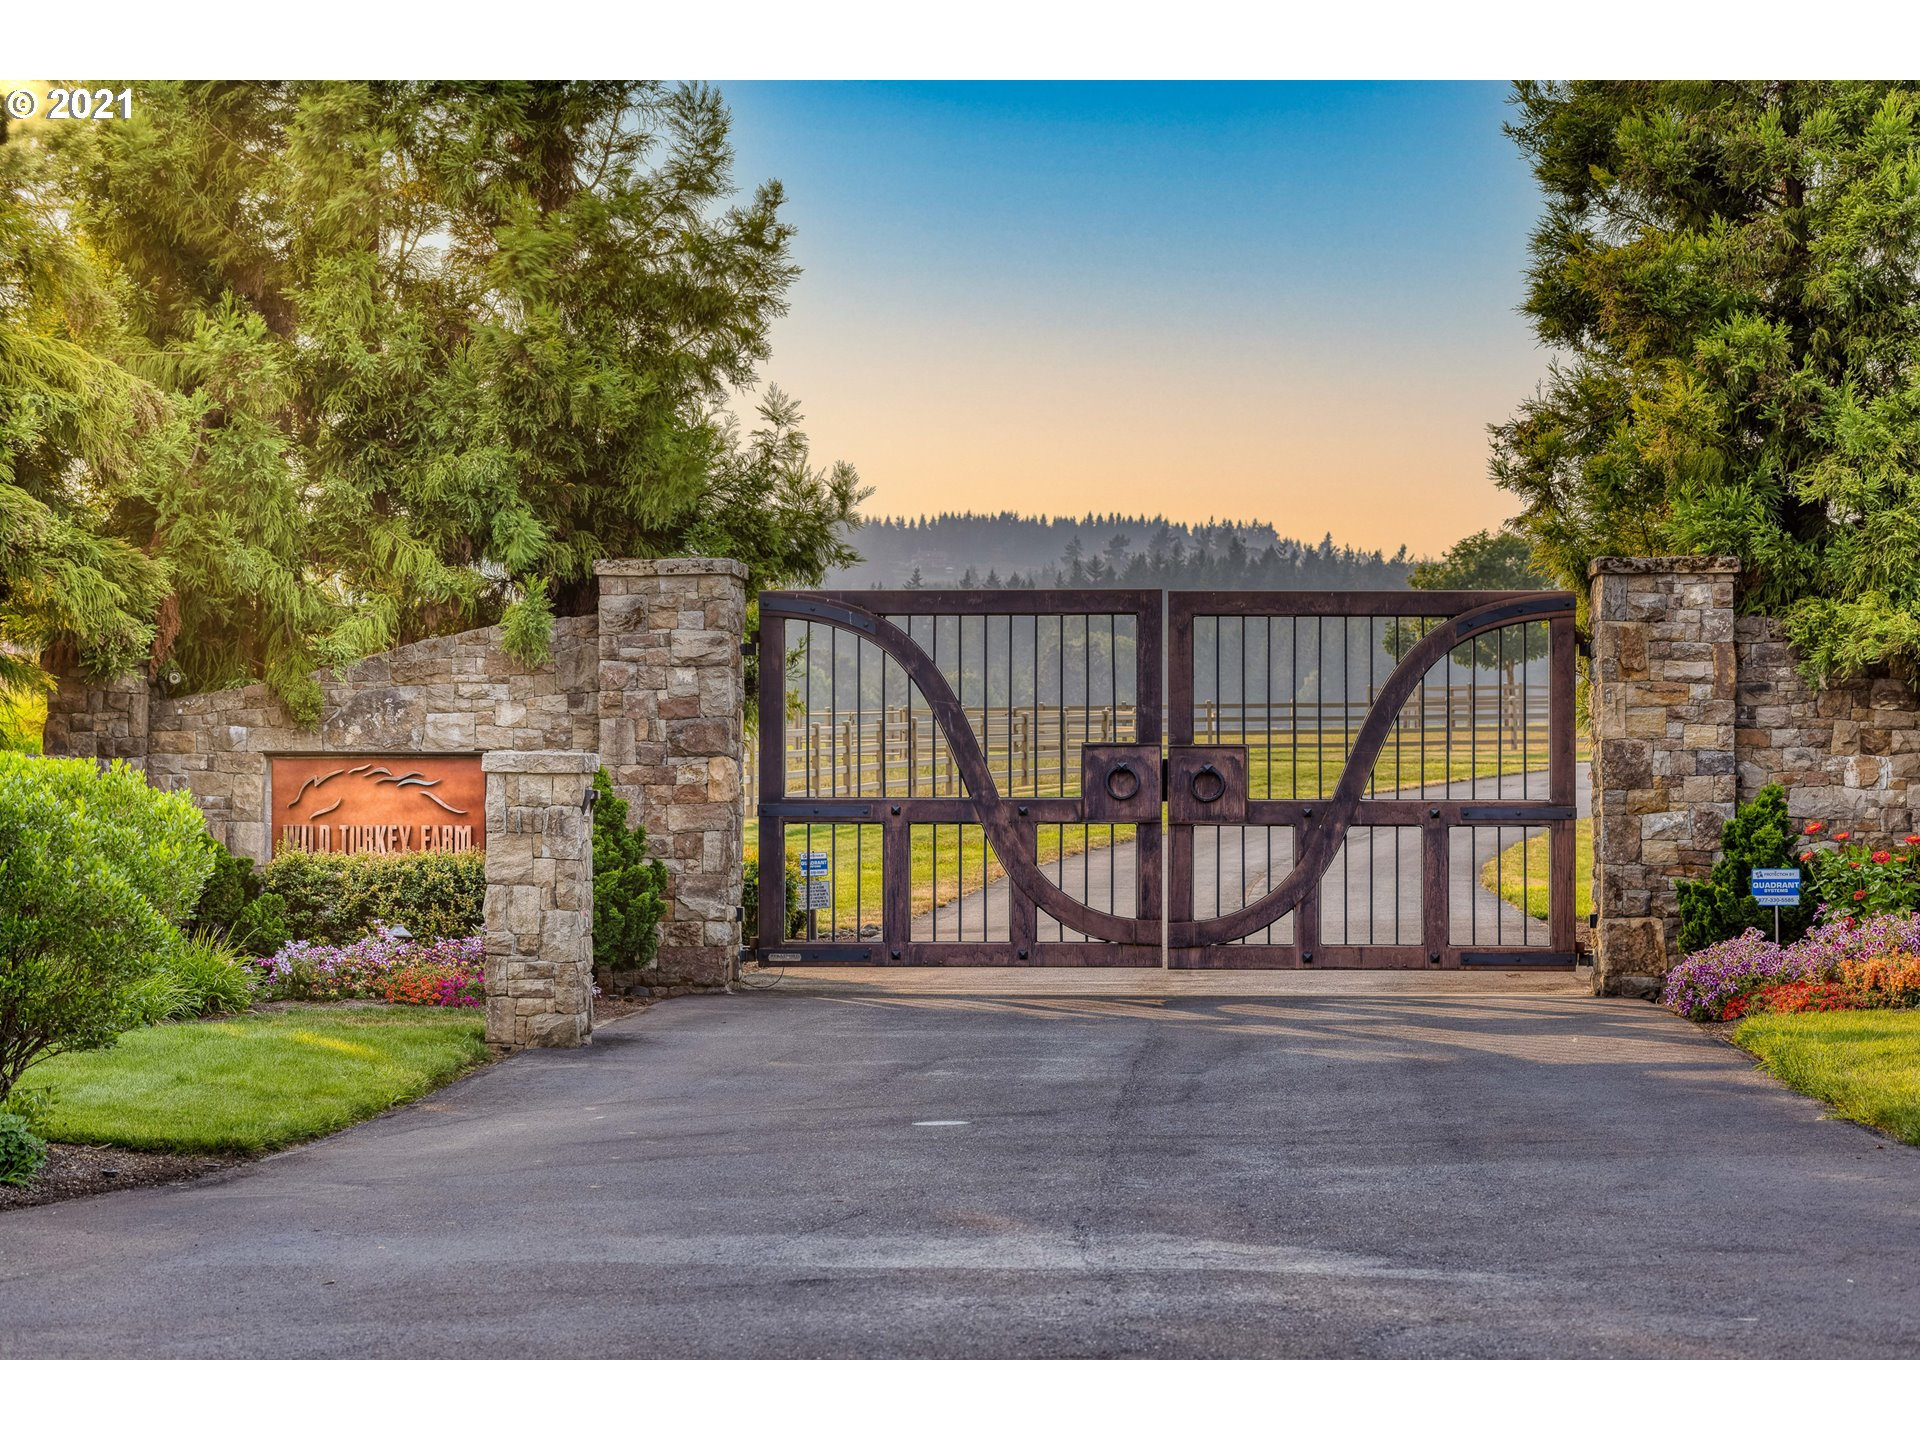 World-class 215-ac equine breeding and training facility on Willamette River w/stunning 9,855sf owner?s residence. State-of-the-art facilities w/indr and outdr arenas, 33 pastures, 5 barns, 97 stalls w/attached runs, vet lab, farrier rms and wash racks. Main res has infinity pool, outdoor living, grmt kit, add'l detach garage w/priv office plus 2 add'l homes for staff/guests. Fenced and gated. River frontage w/dock. Exceptional equestrian lifestyle opportunity! Real Estate only for sale.